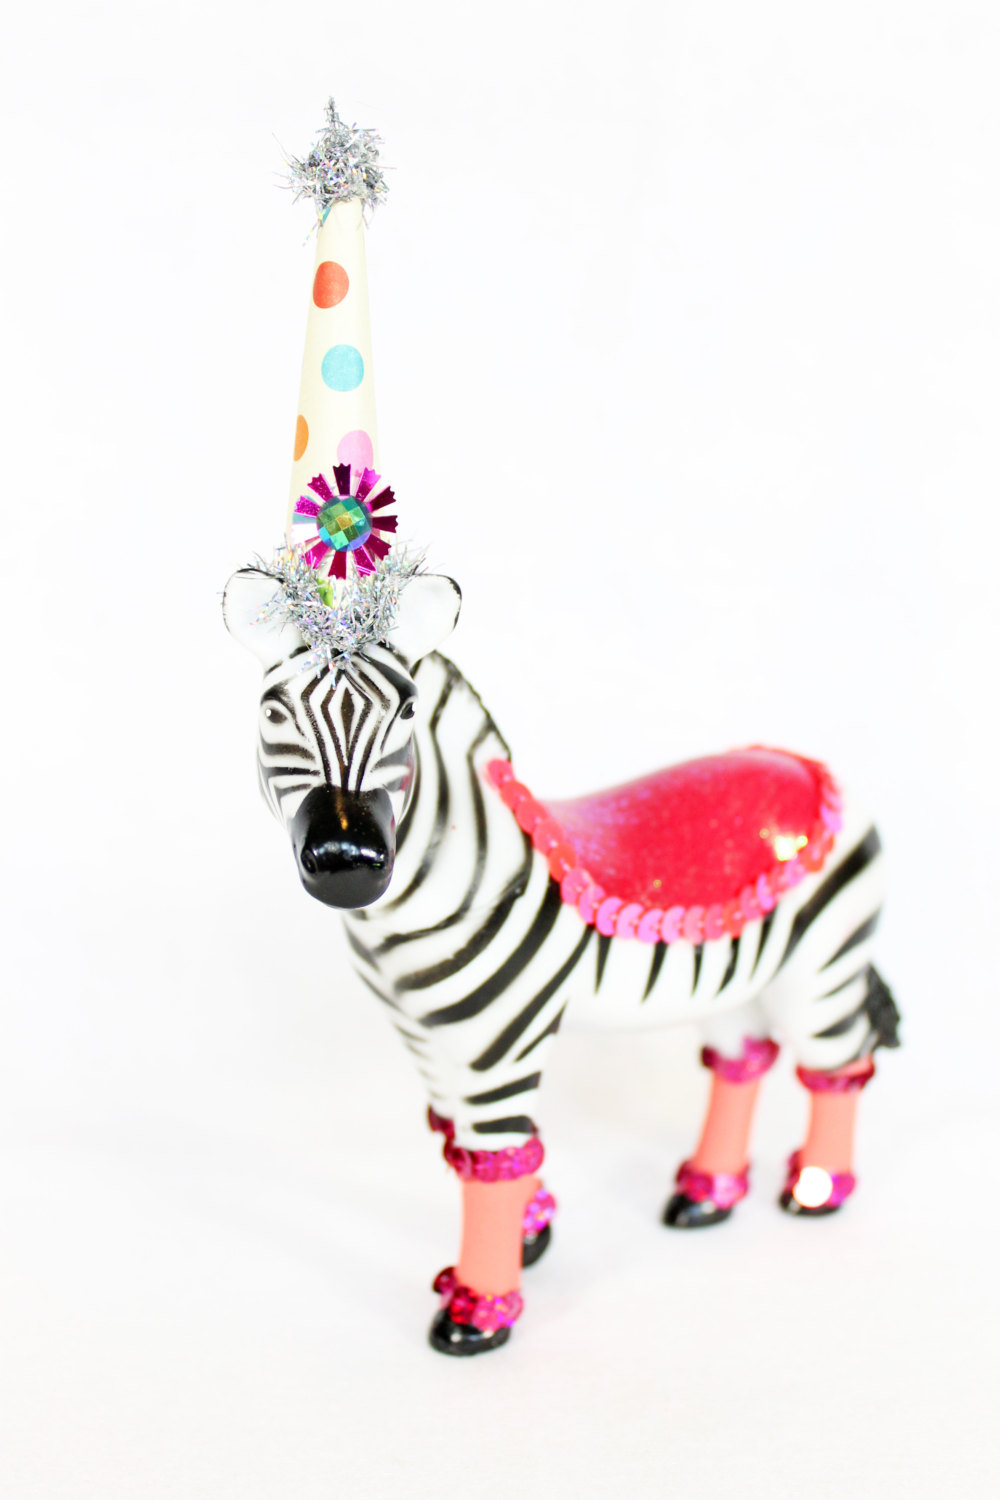 Zebra Circus Cake Topper / Zebra in Birthday Party Hat / Table Decoration from Painted Parade / see more on www.GiggleHearts.com